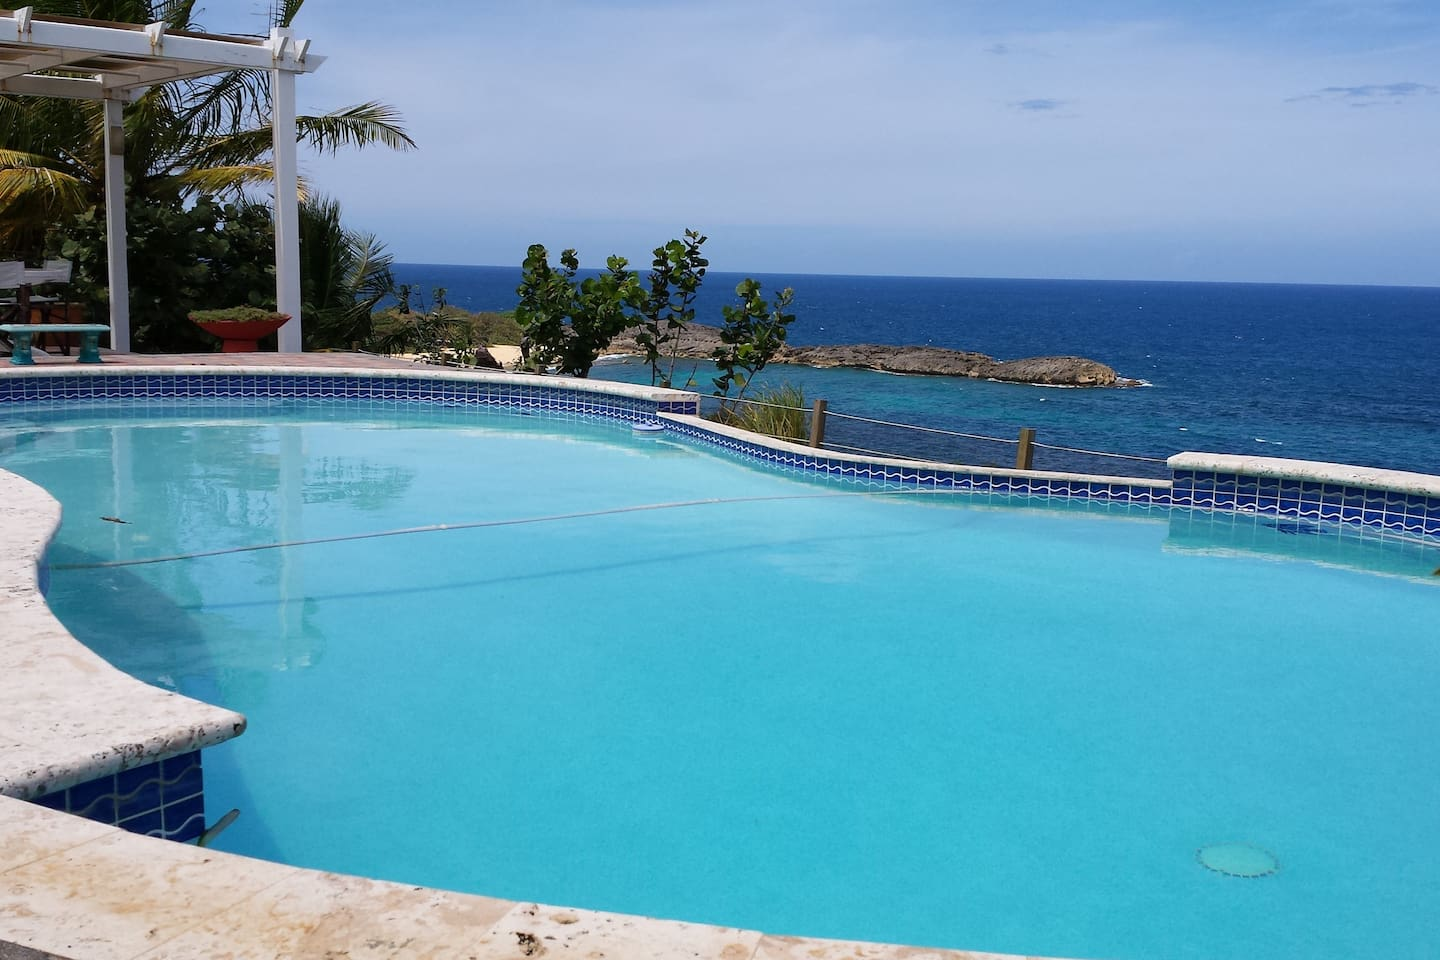 View of the Pool and Atlantic Ocean.